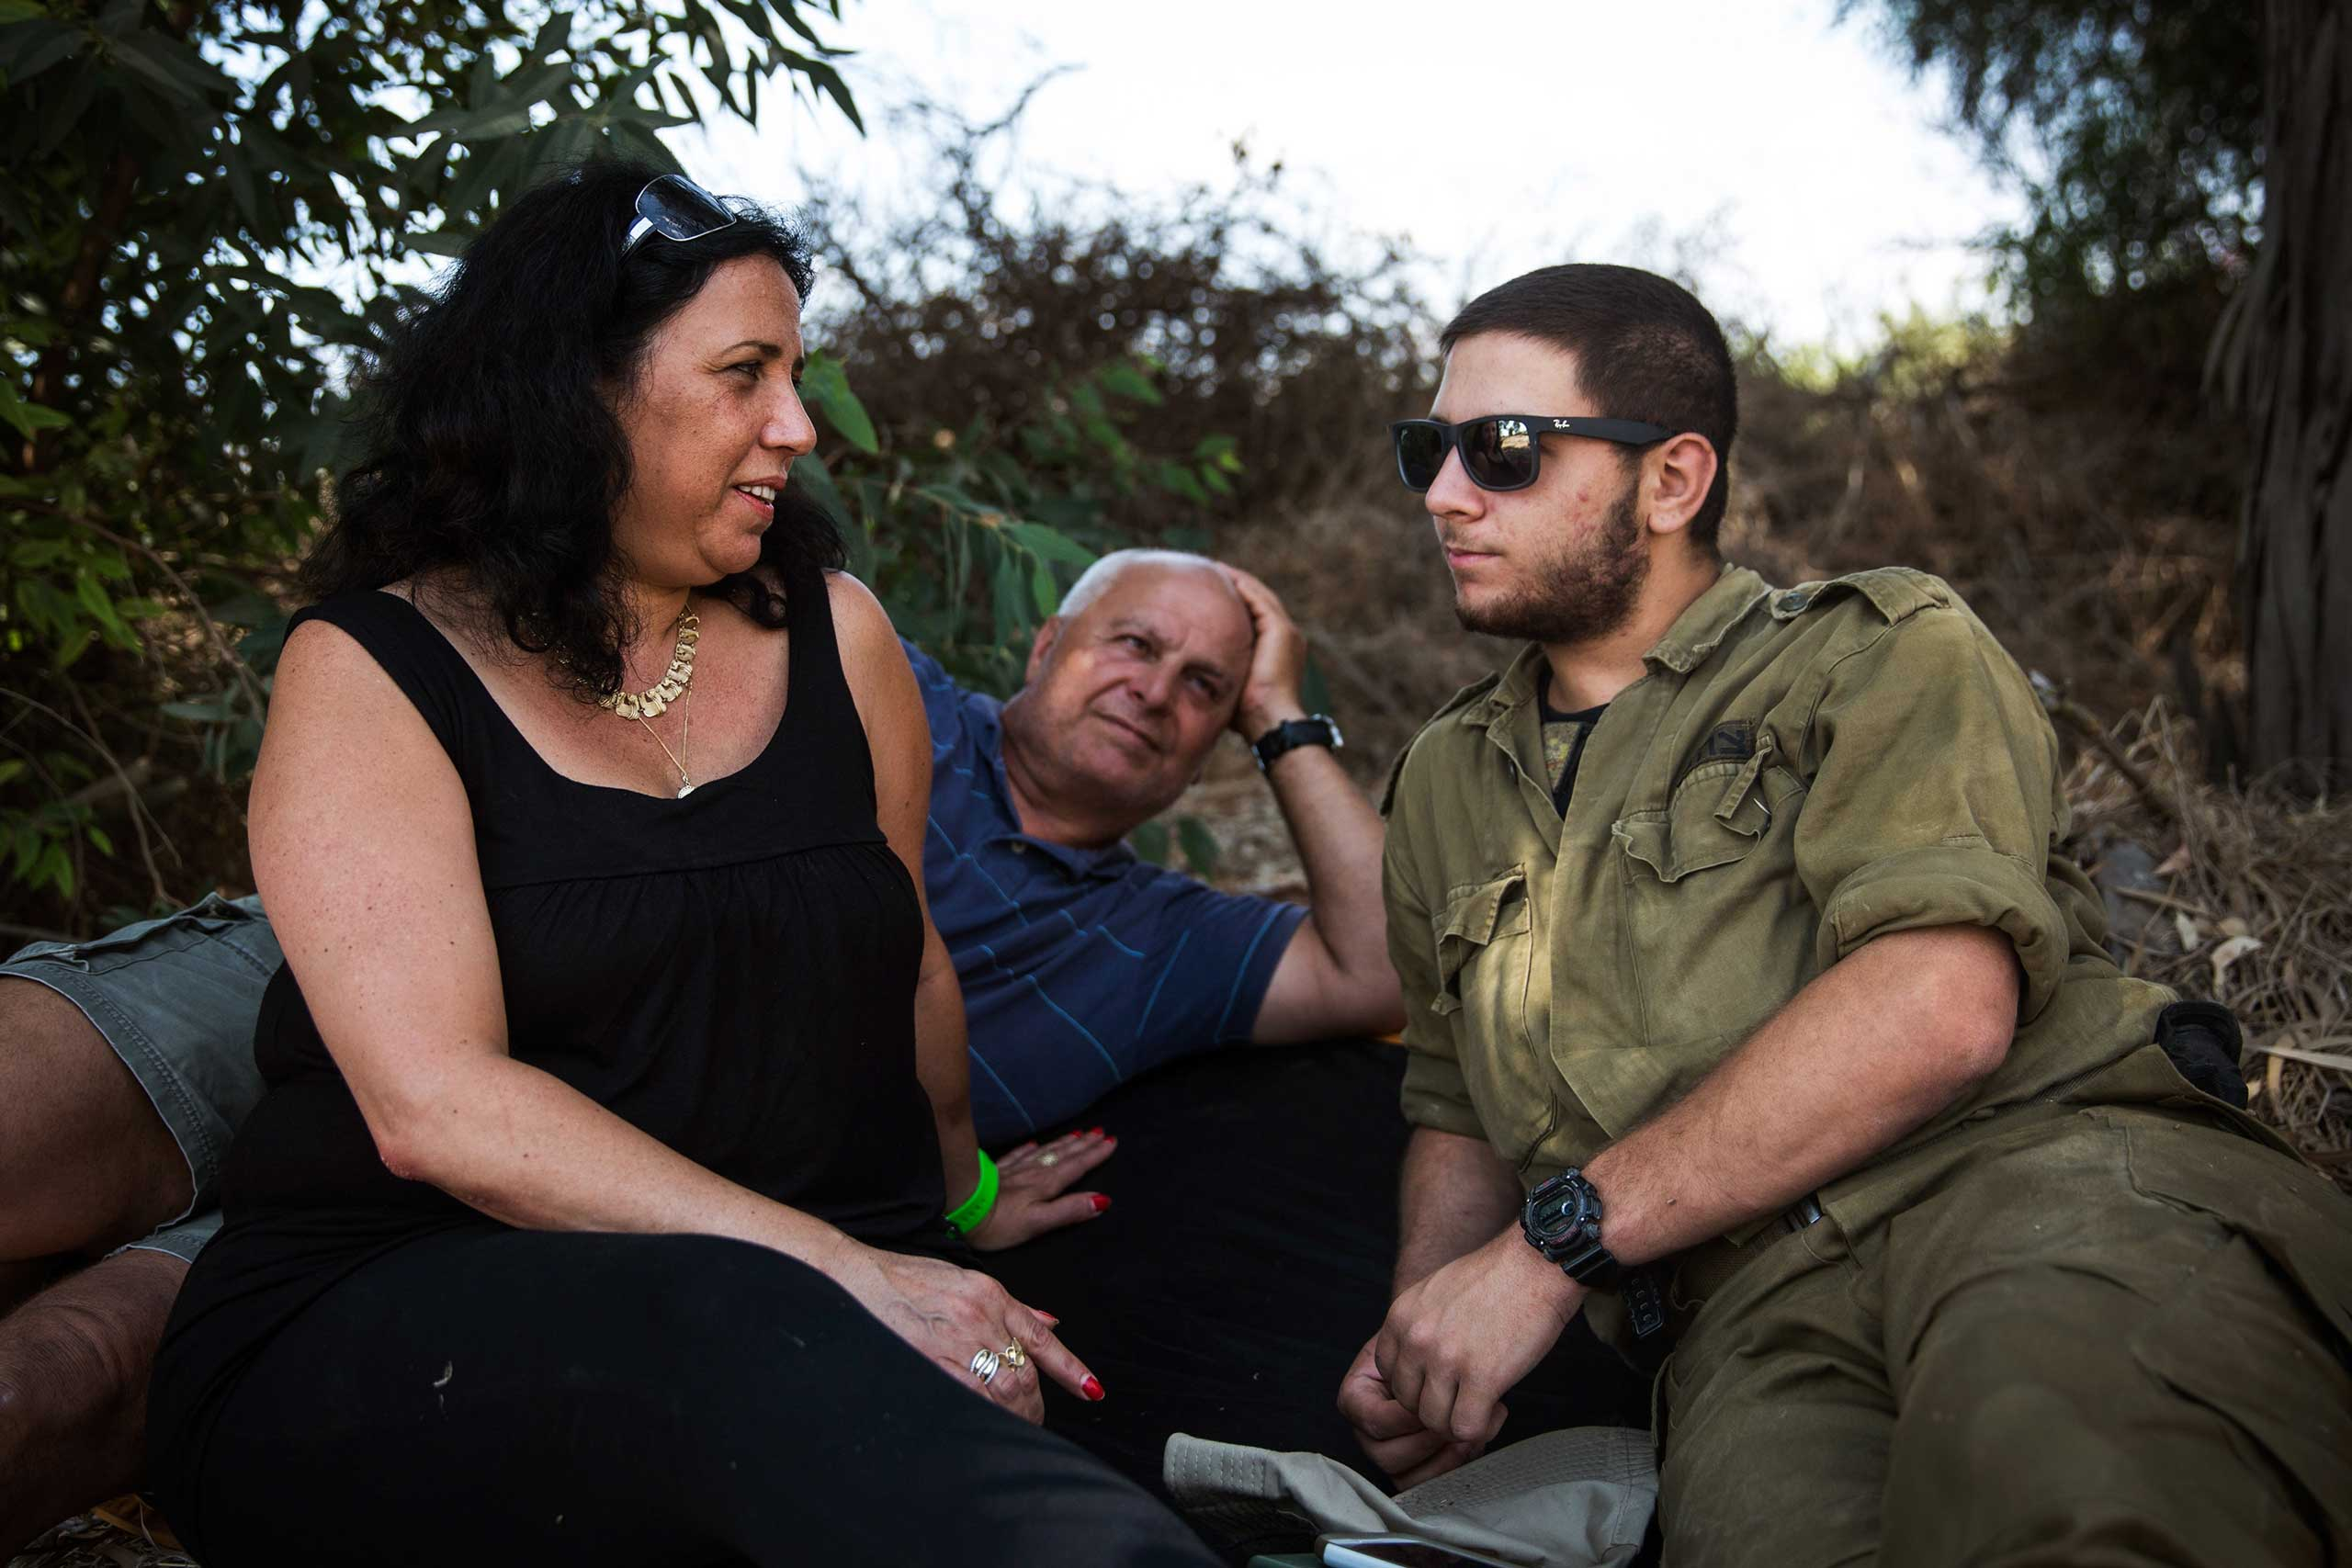 Ruty Friza and Pini Friza meet with their son, First Lieutenant Ziv Friza during a 12-hour ceasefire just outside the militarized zone close to the Israel-Gaza border near Kfar Aza, Israel, on July 26, 2014.